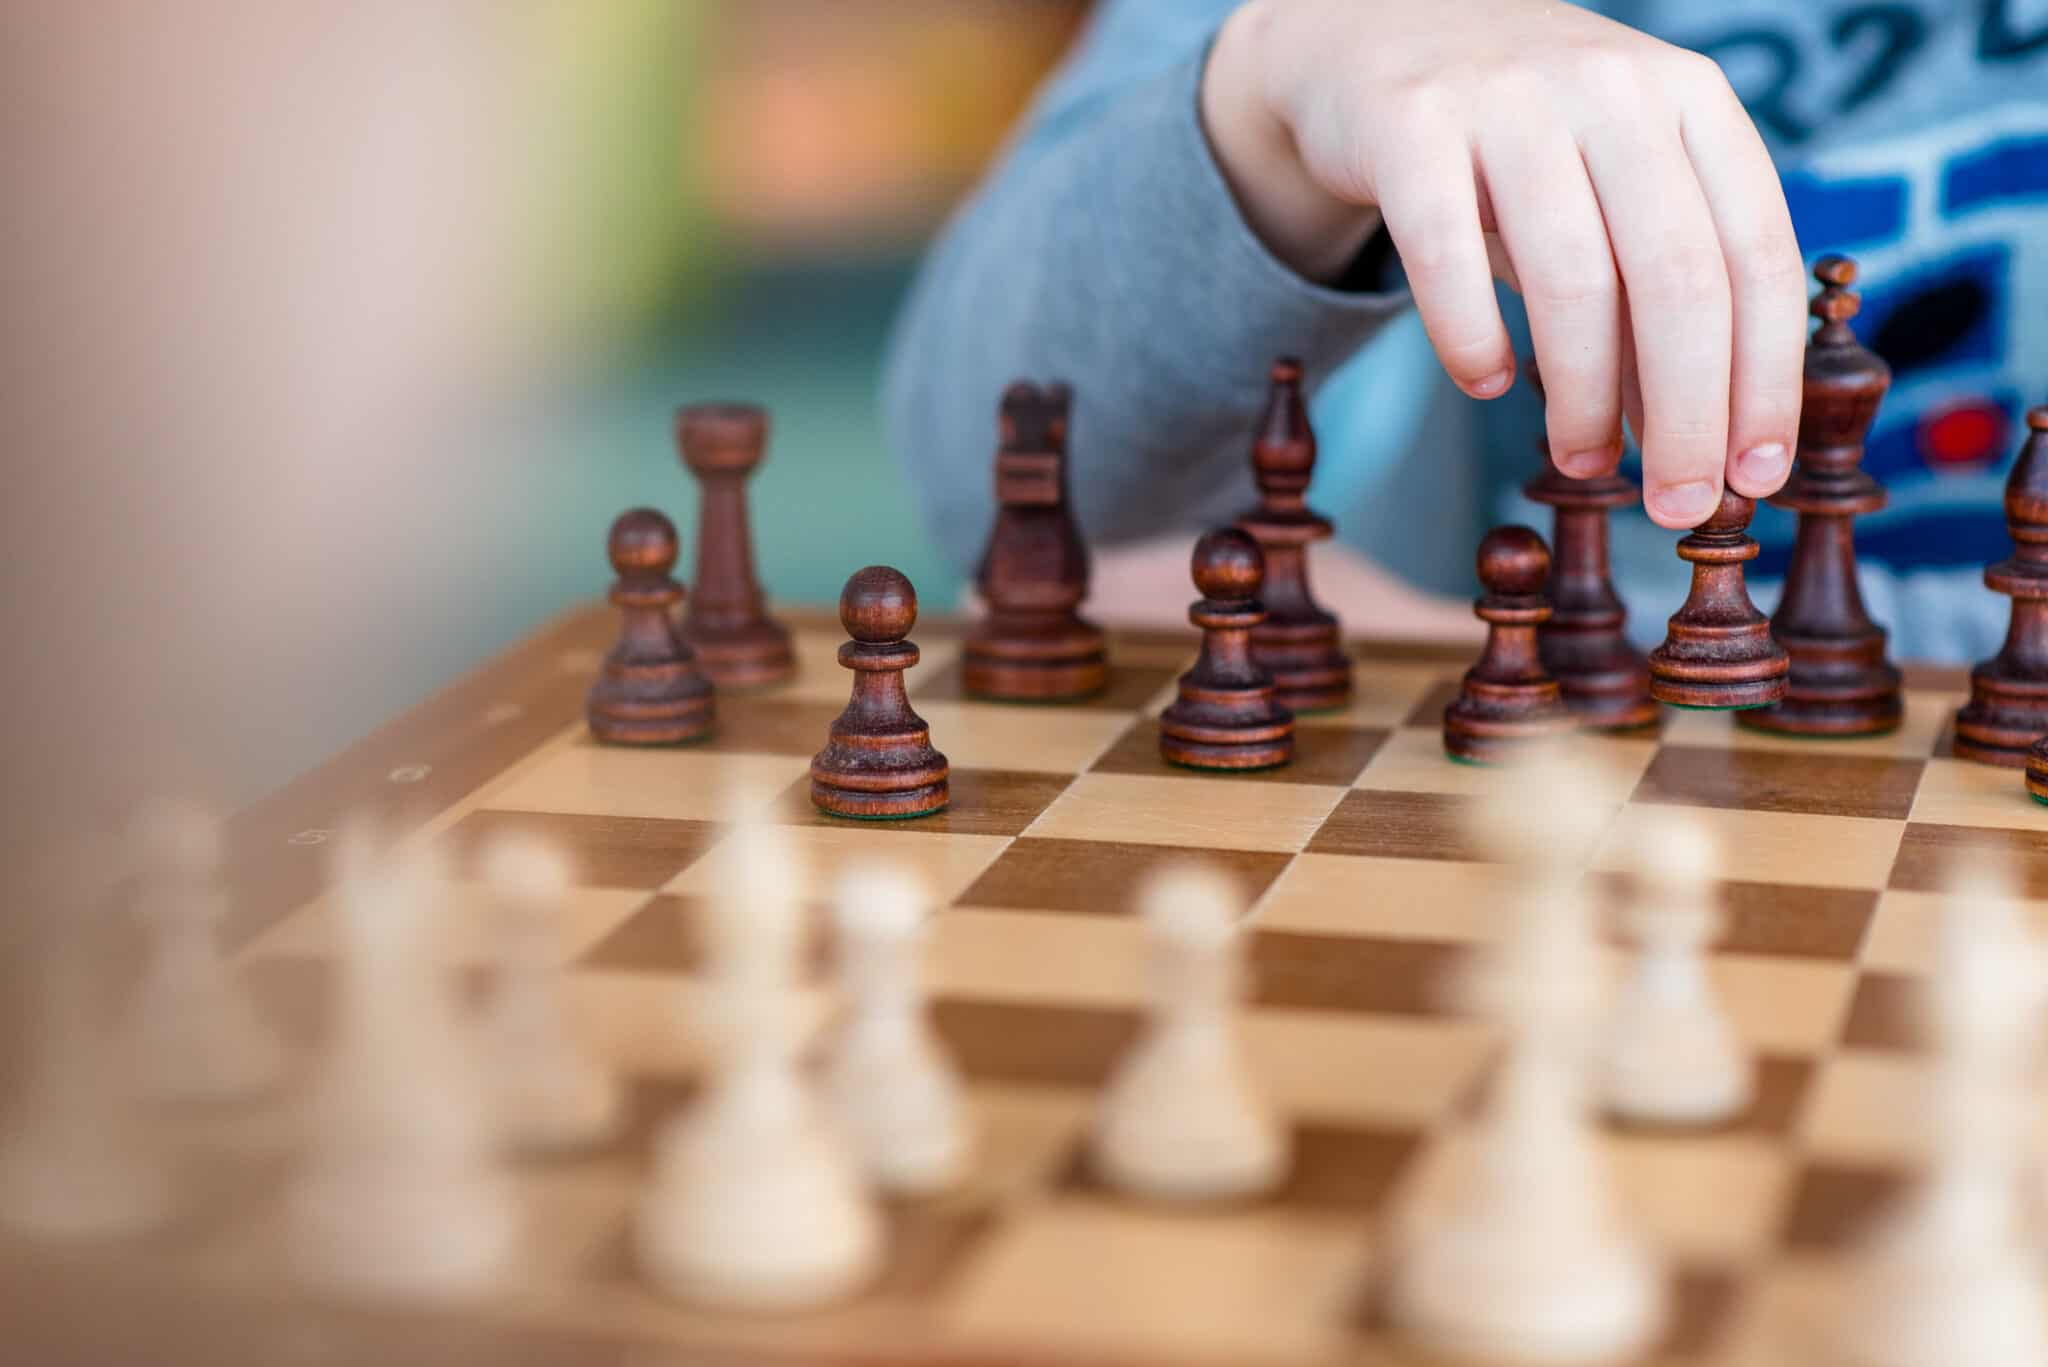 Beginner chess player holding his hand over black chess pieces